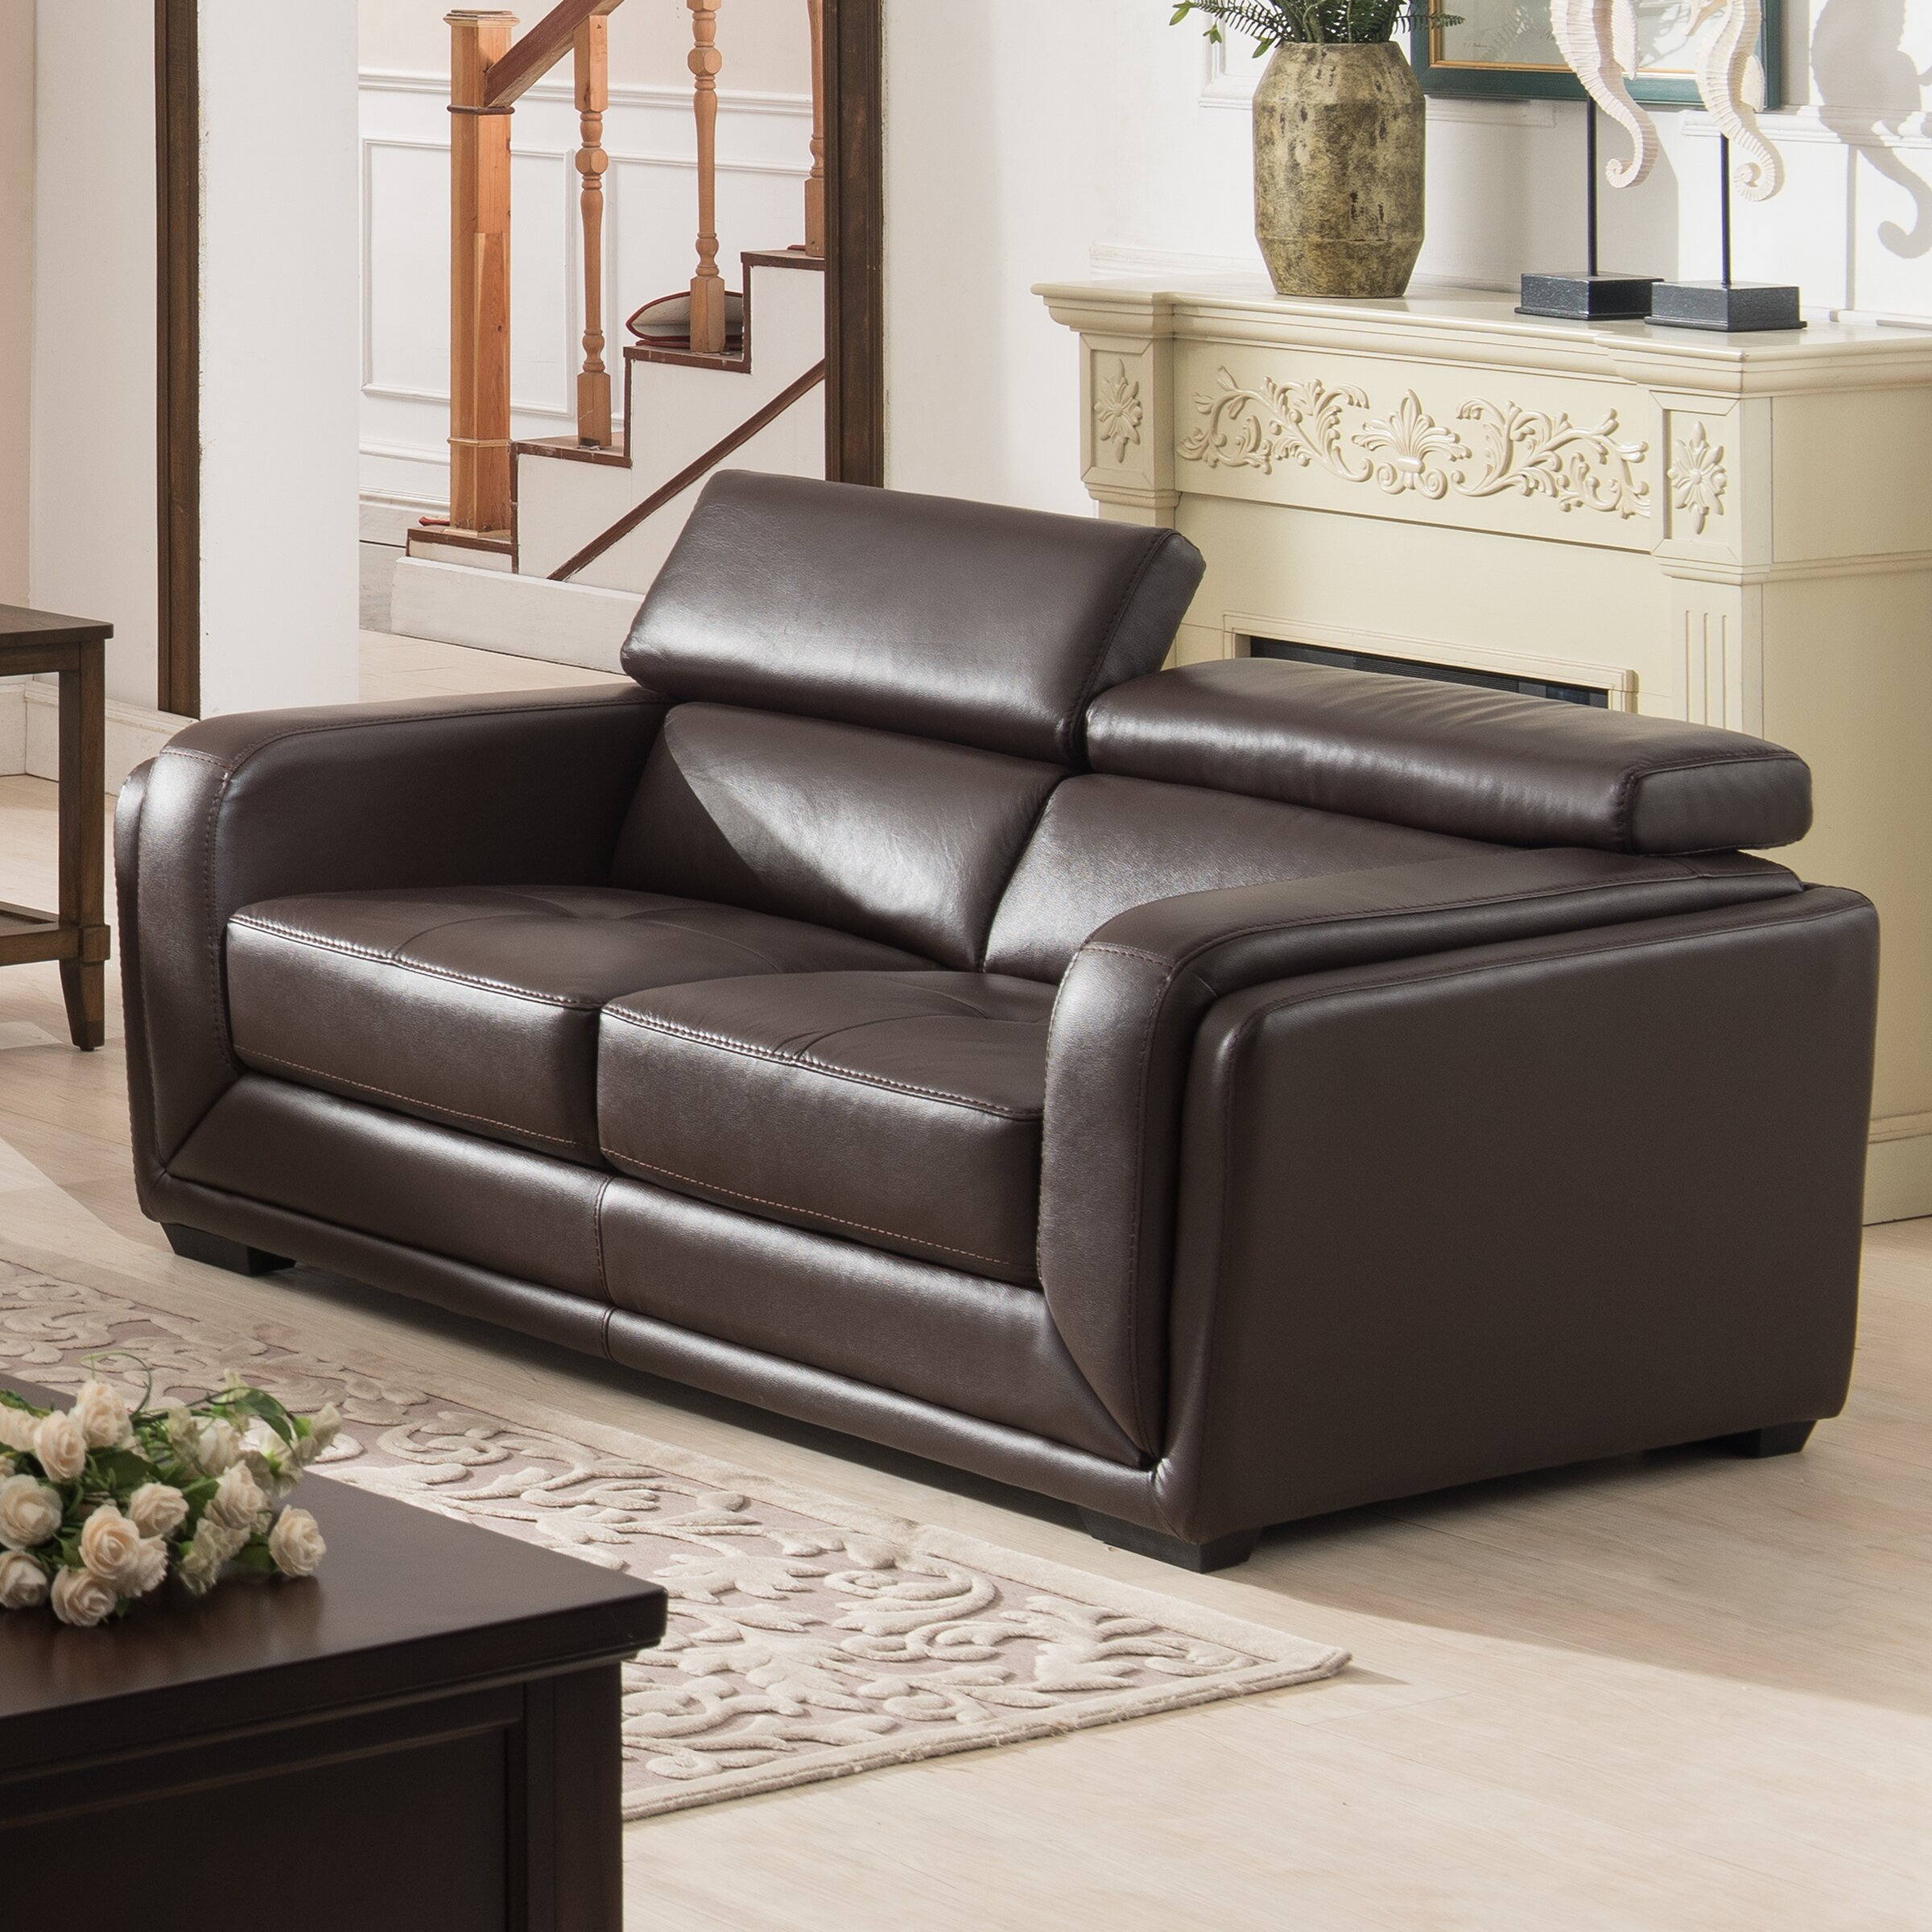 ac pacific calvin modern 2 piece leather living room set